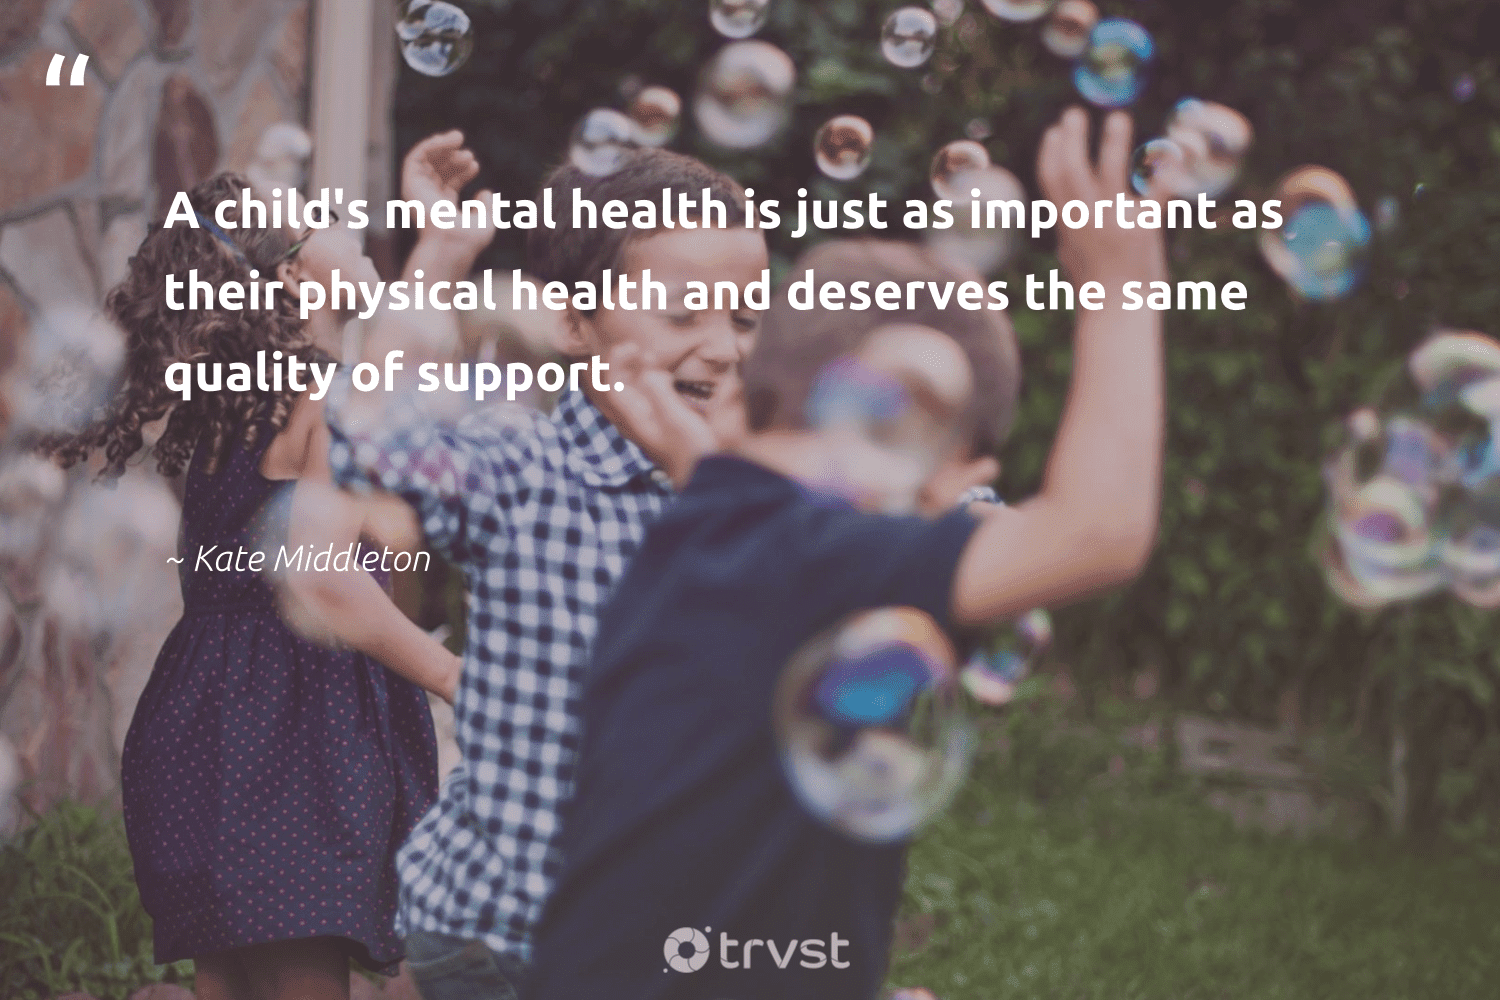 """A child's mental health is just as important as their physical health and deserves the same quality of support.""  - Kate Middleton #trvst #quotes #mentalhealth #health #anxiety #nevergiveup #begreat #impact #mentalhealthmatters #togetherwecan #changemakers #socialimpact"